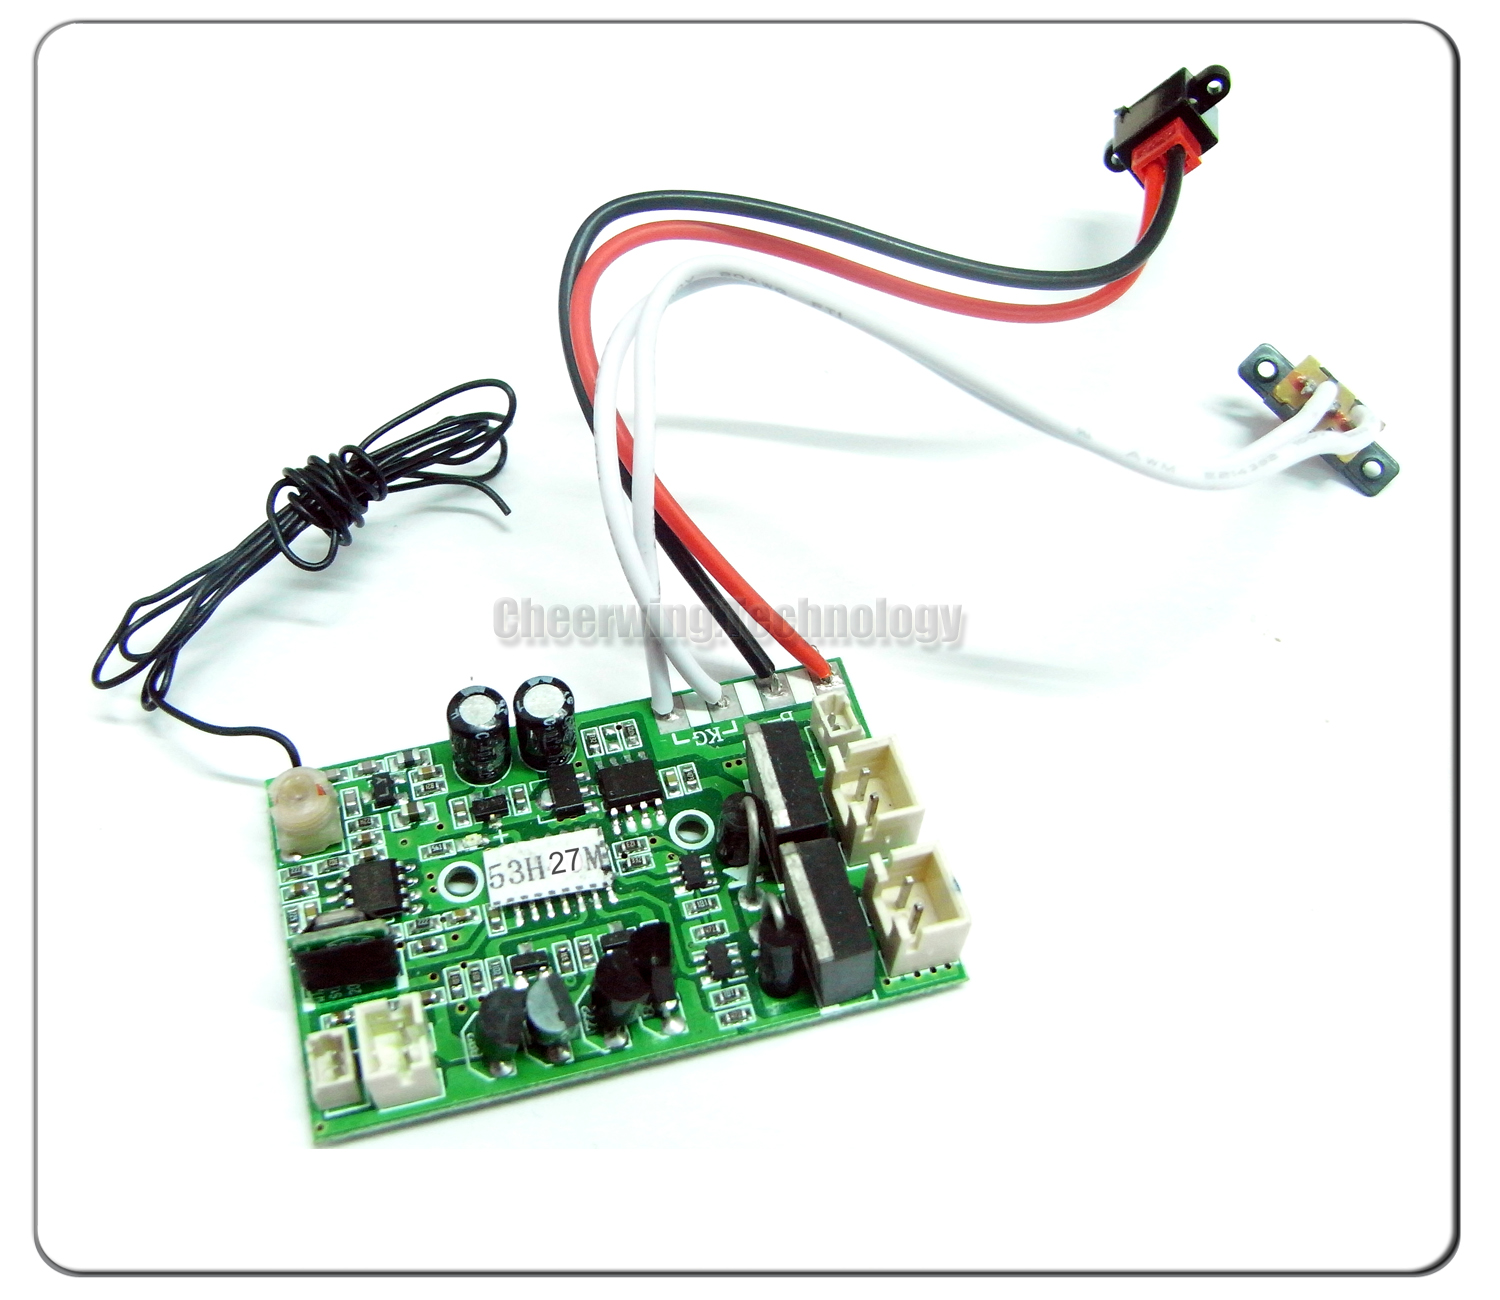 27mhz pcb board 9101 23 for double horse 9101 helicopte on popscreen